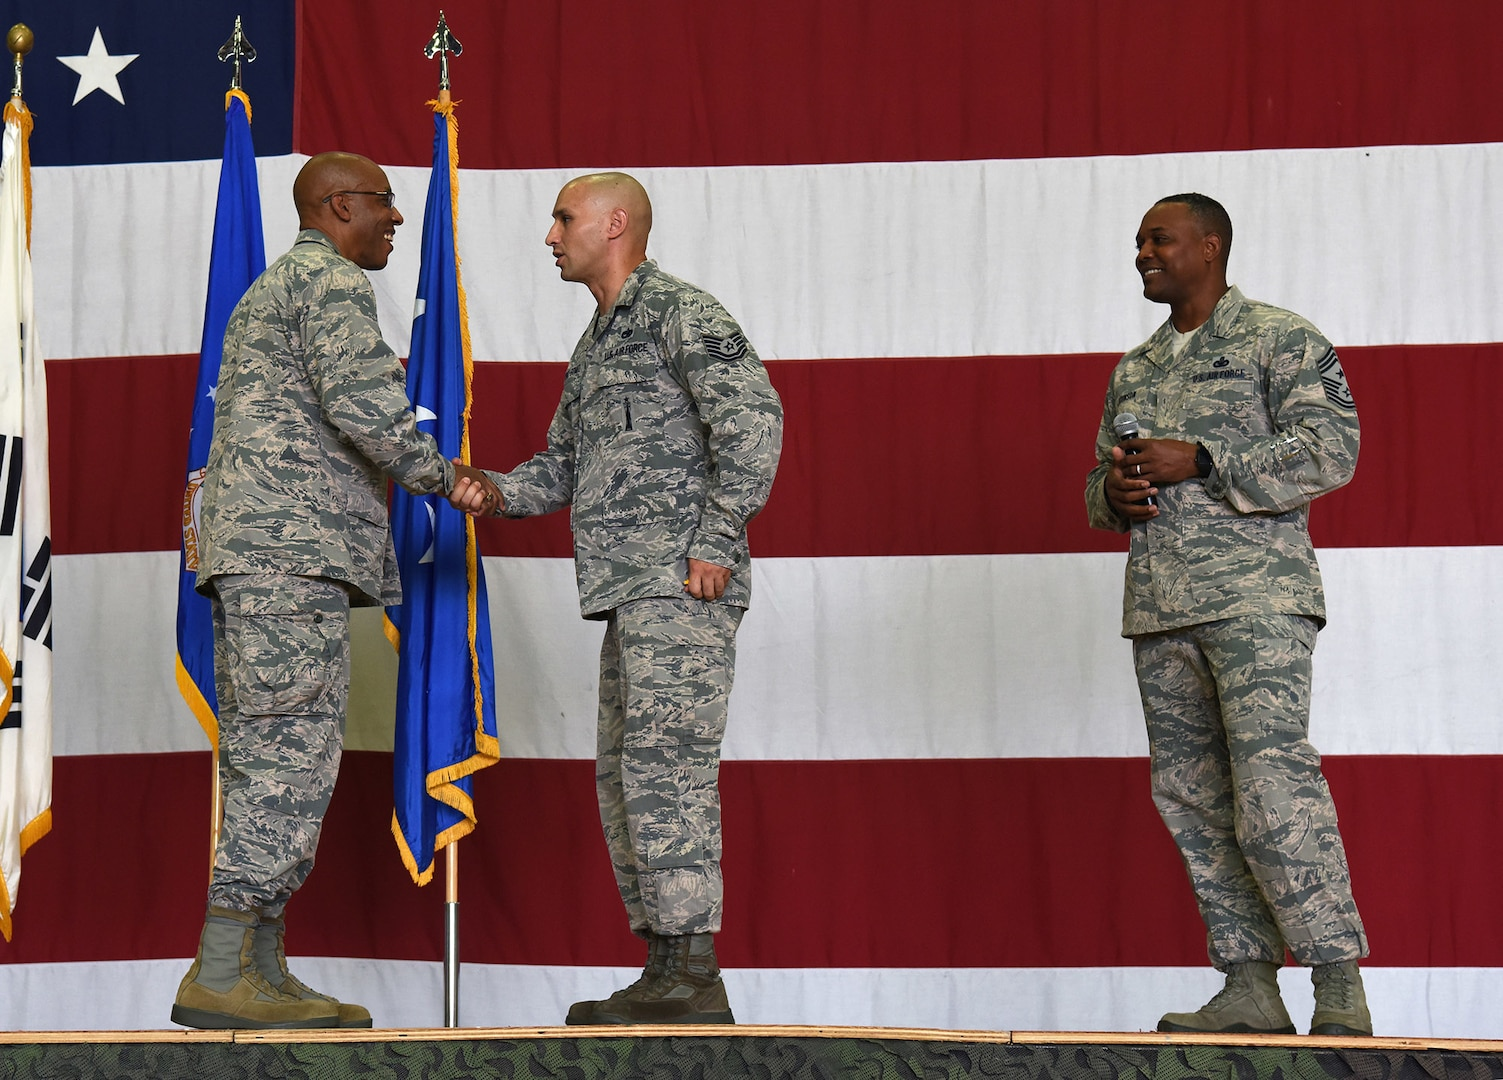 Brown thanks Airmen, outlines priorities during Osan visit